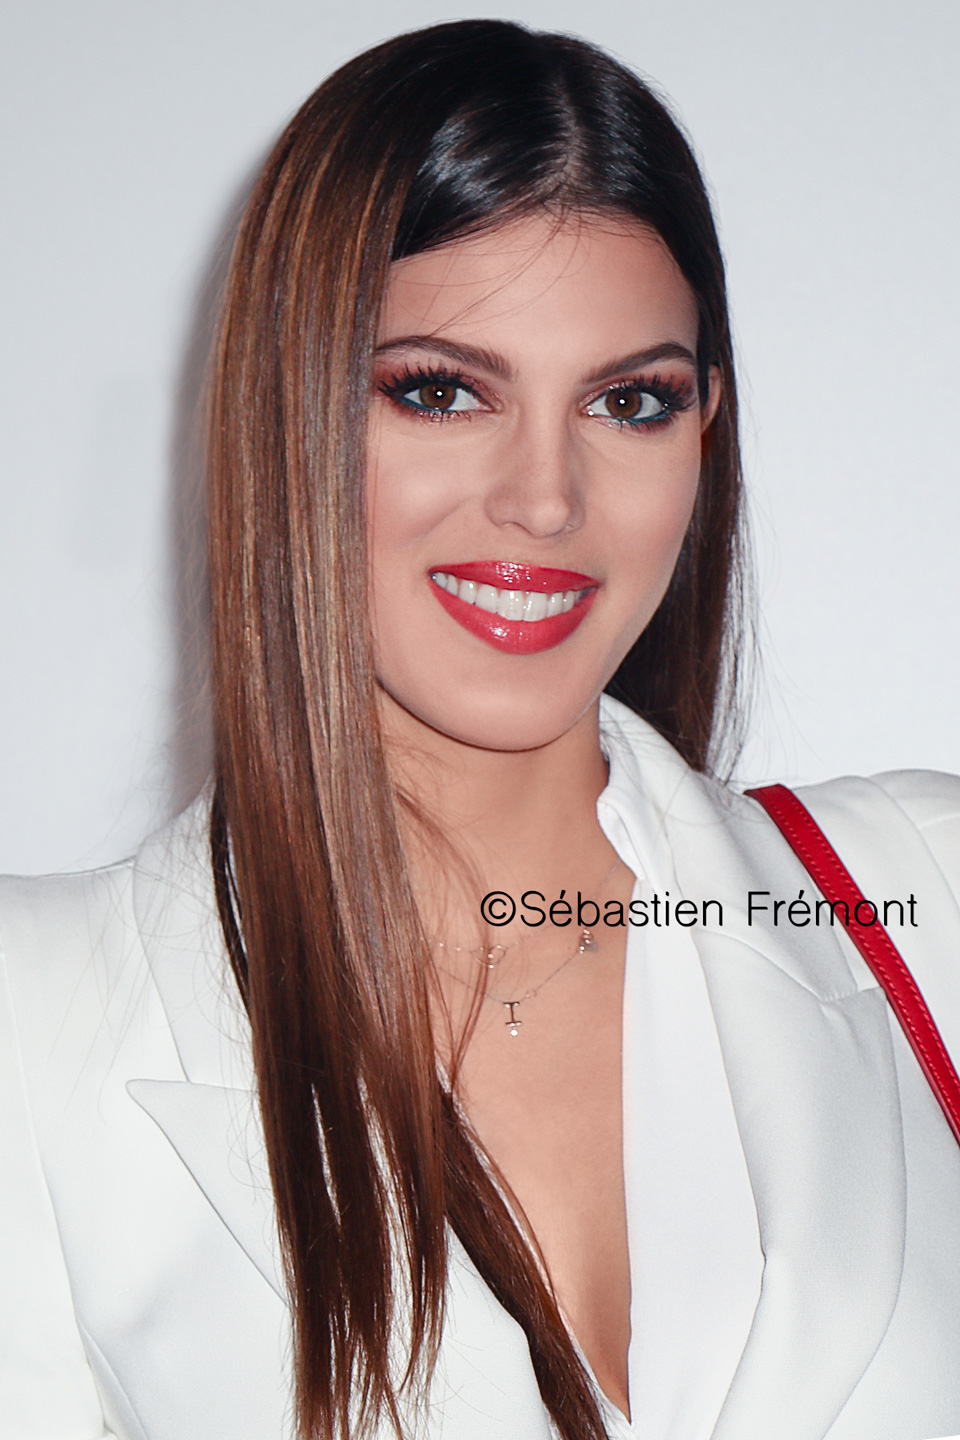 French Photographer Portrait Photography Miss Universe Iris Mittenaere